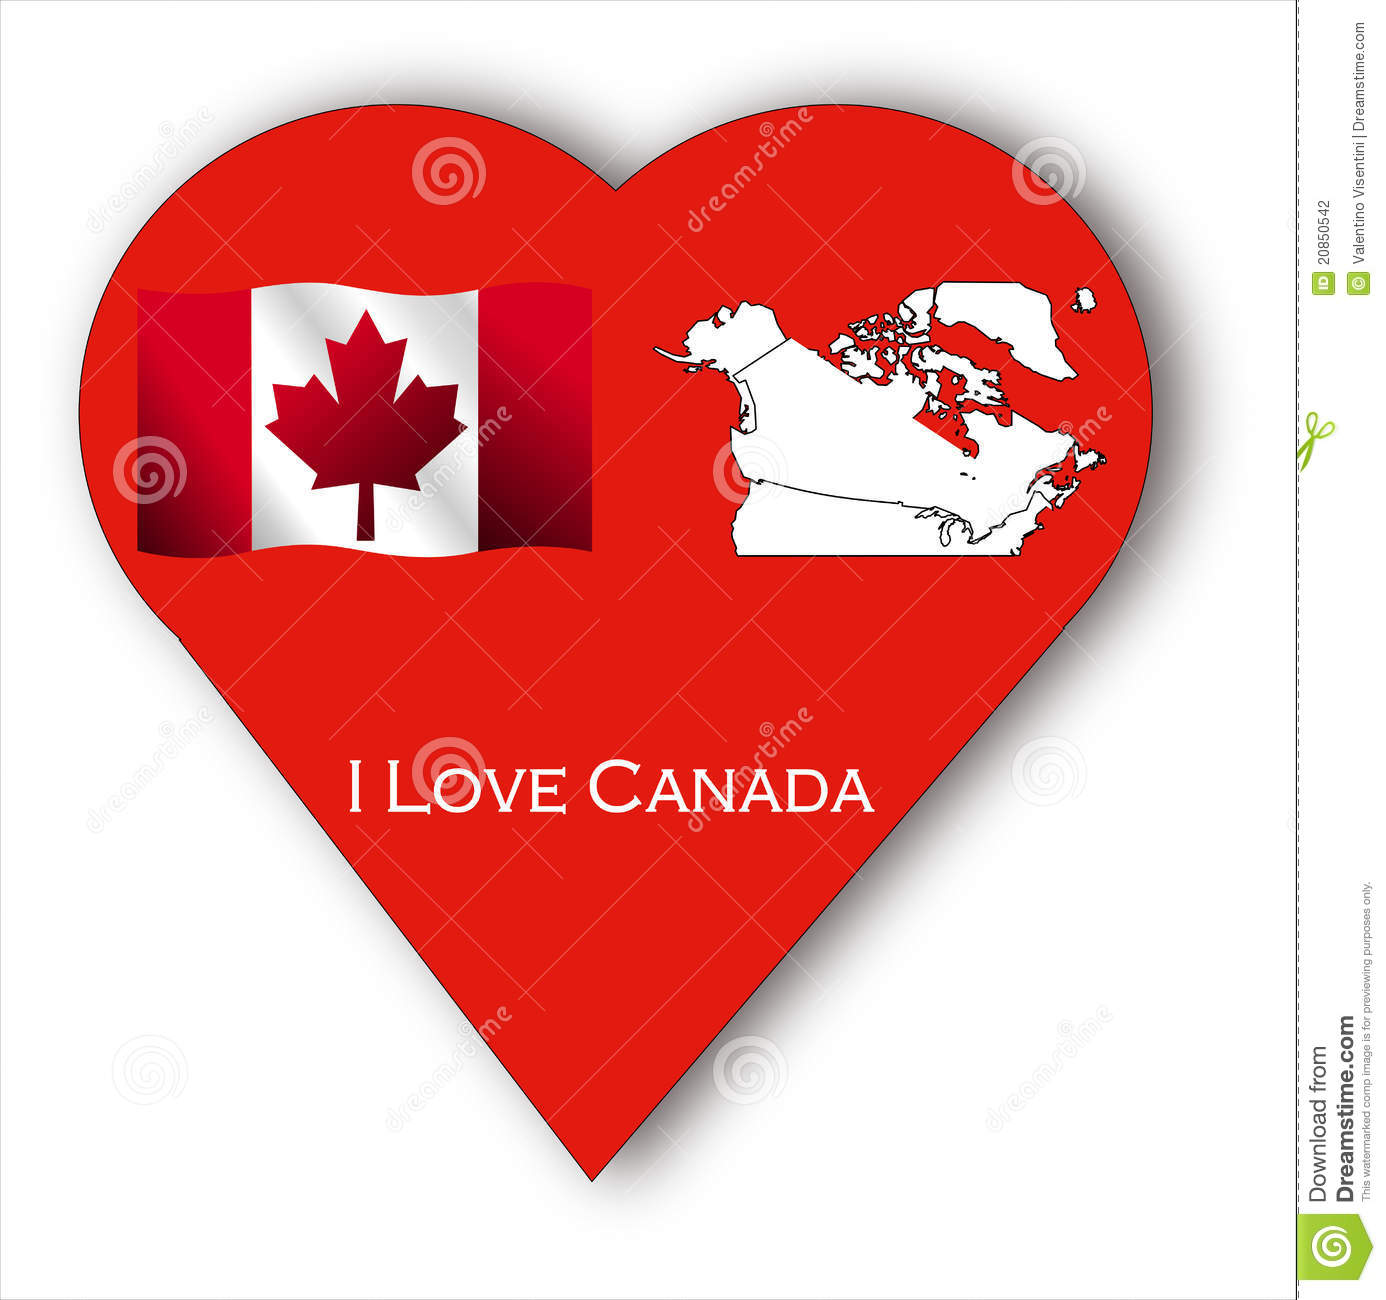 Canadian patriotic illustration in red and white.